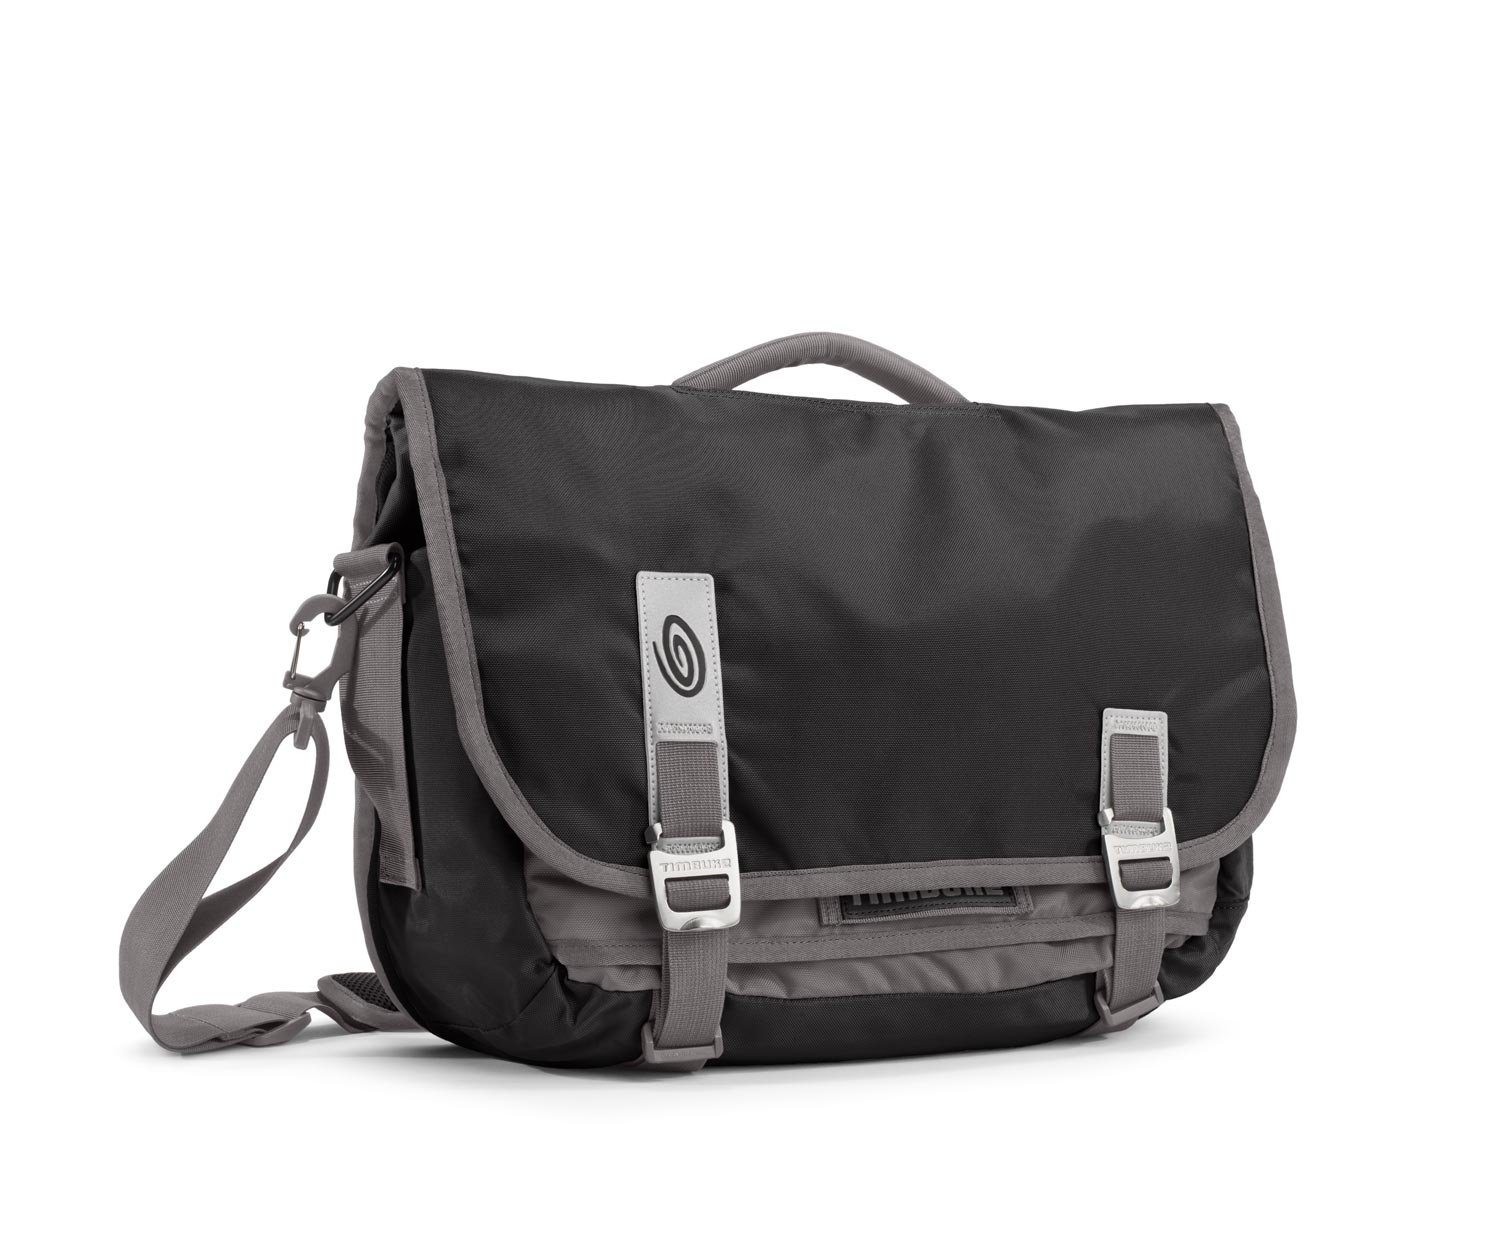 Timbuk2 Command Laptop TSA-Friendly Messenger Bag